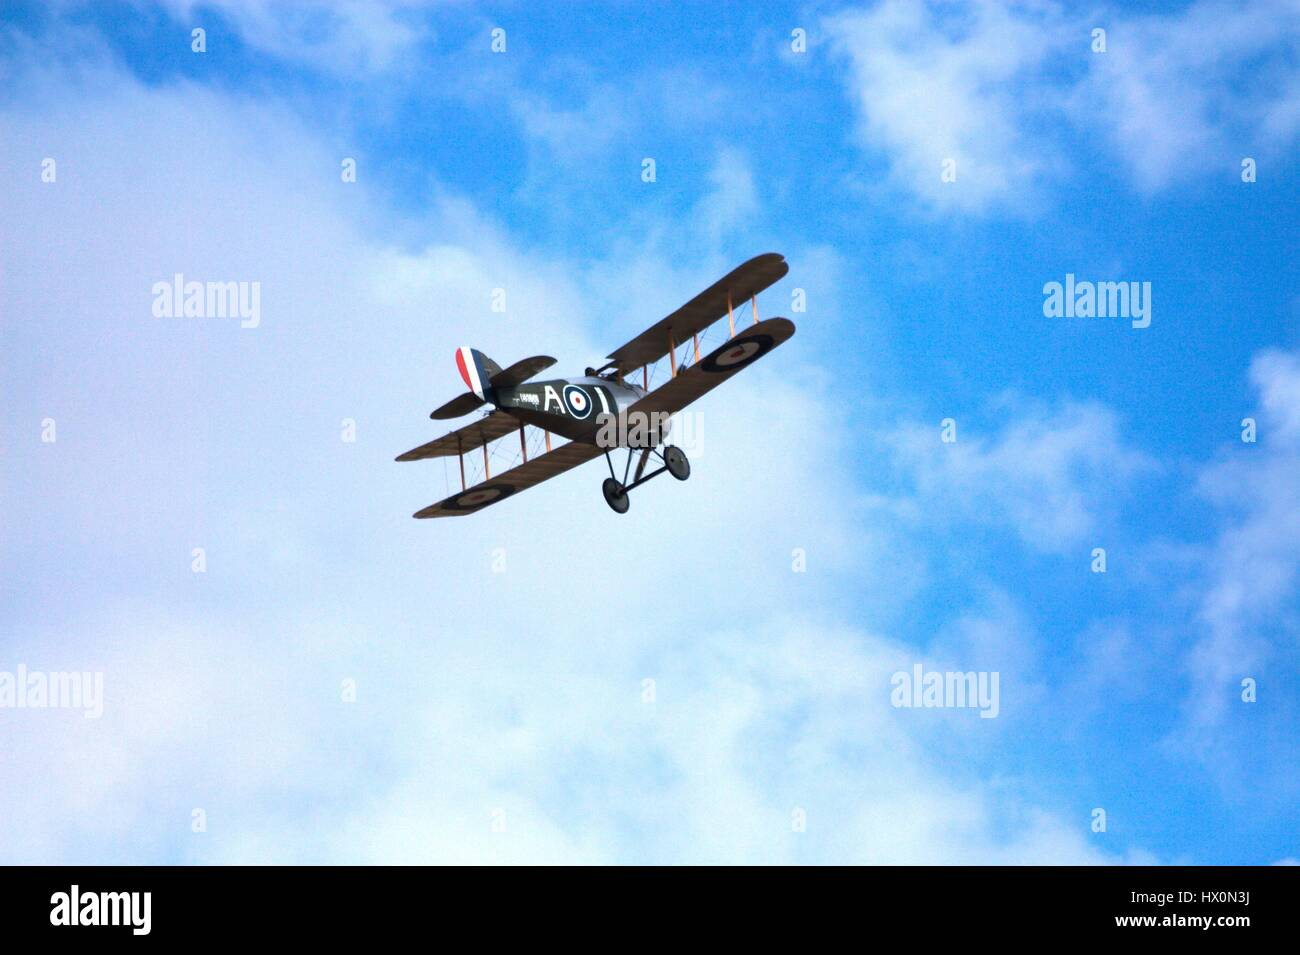 Sopwith 7F.1 Snipe in flight against blue sky at the Avalon airshow, Australia, 2017. - Stock Image